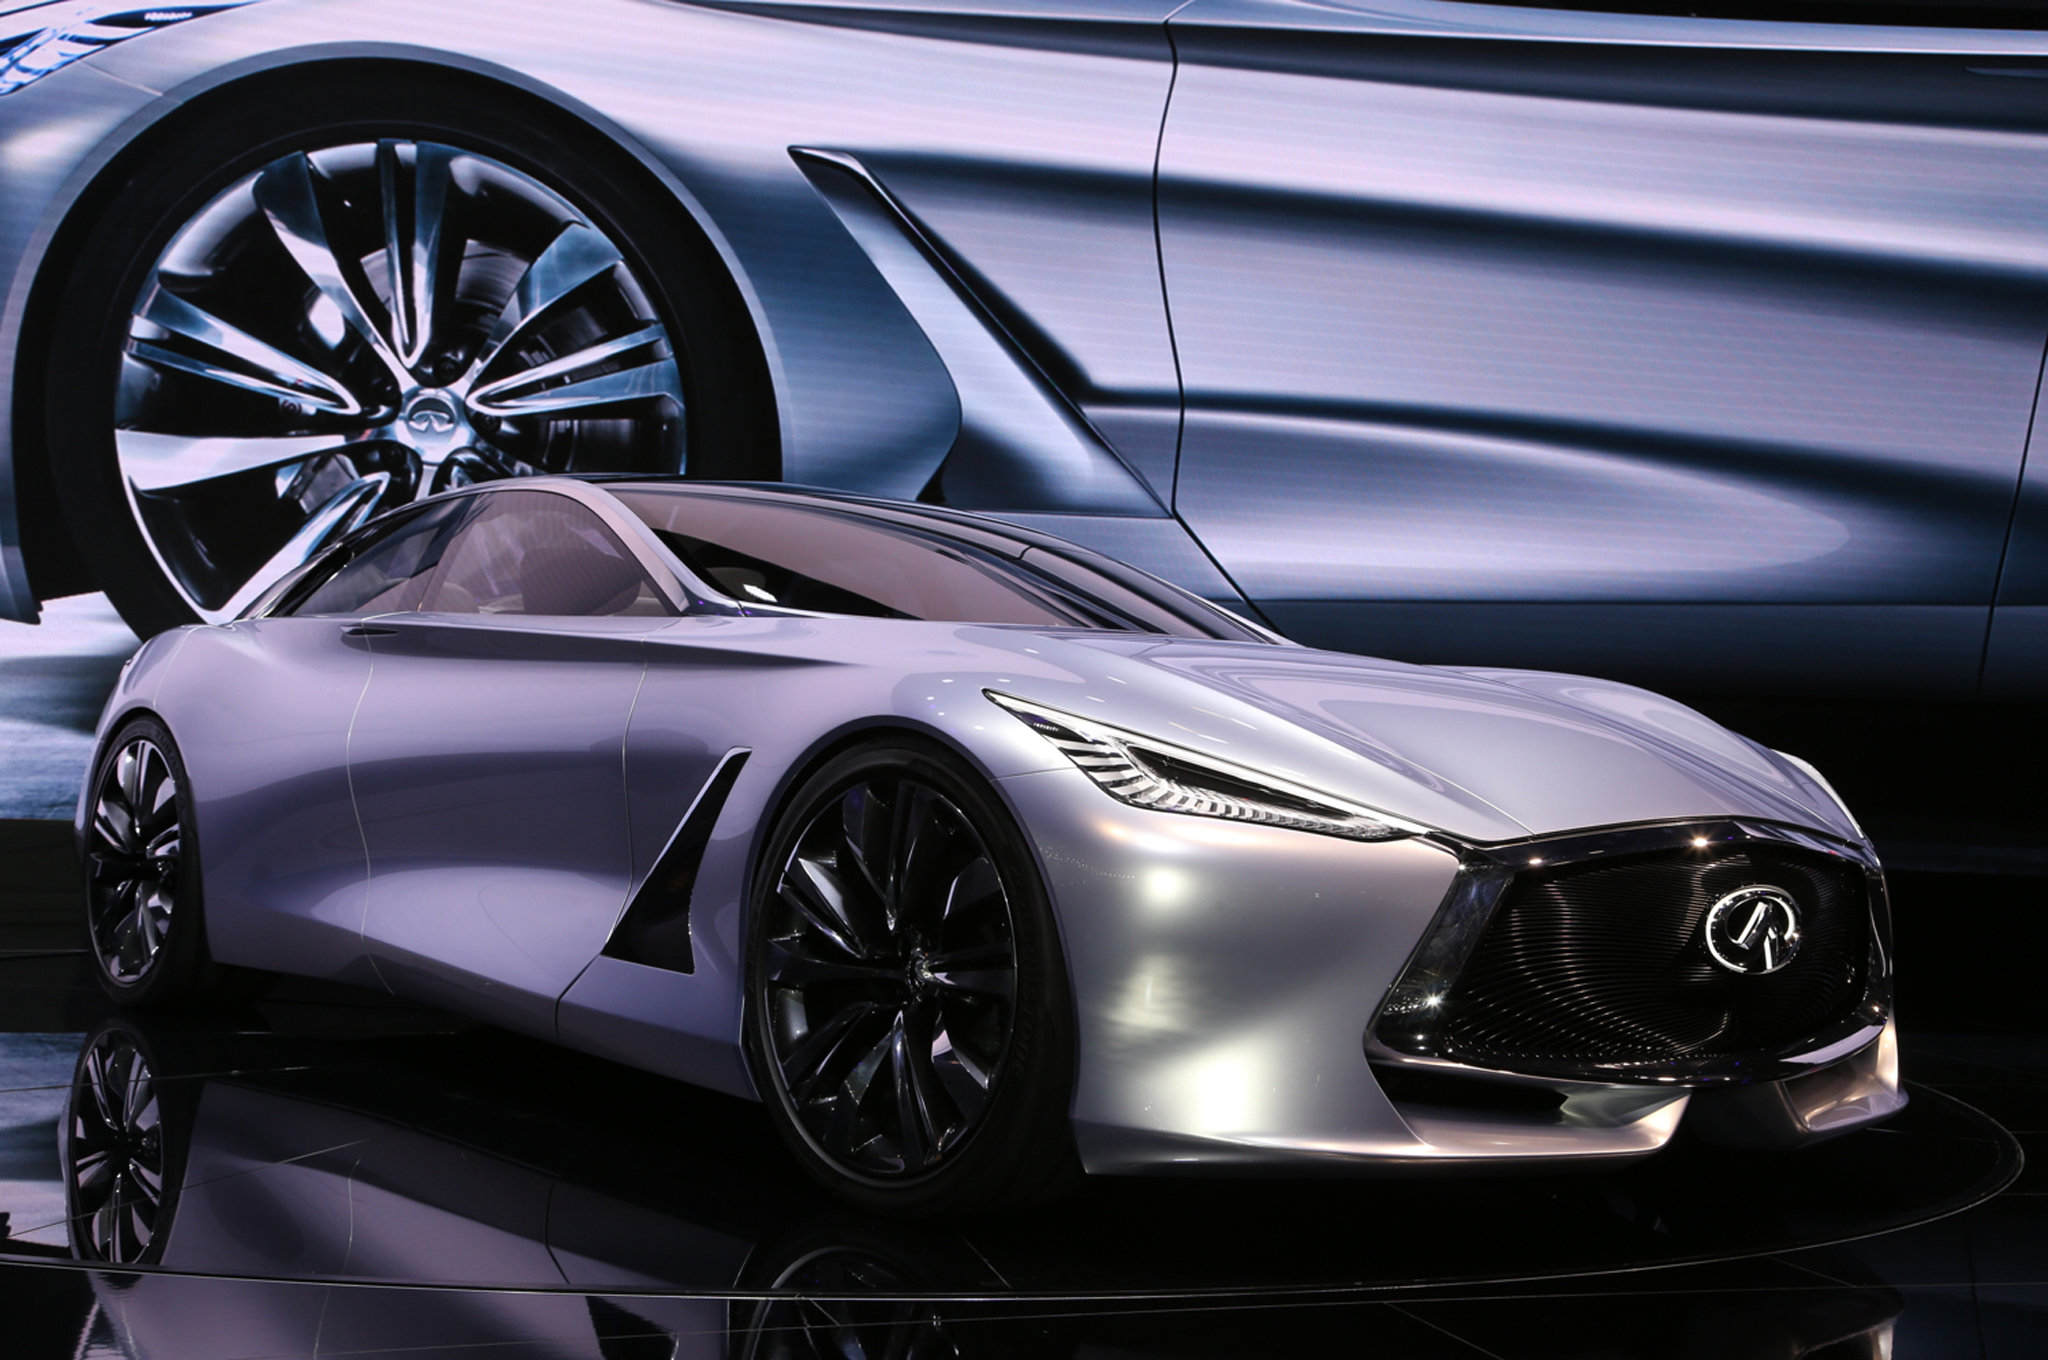 Infiniti Q80 Inspiration Concept First Look - Motor Trend